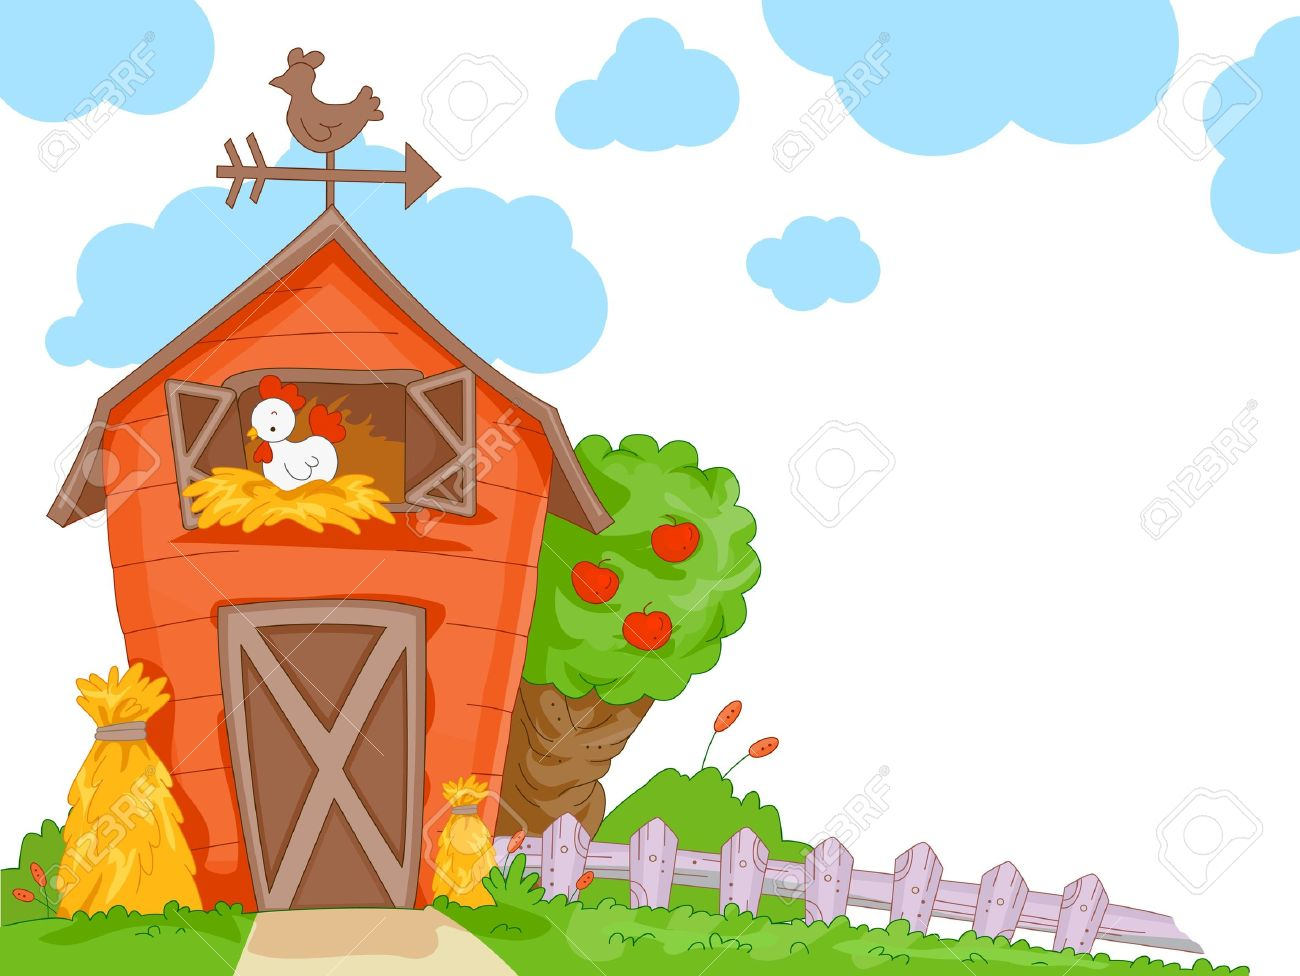 A Cute Barn With Clear View Of The Chicken Nesting Inside For Background Stock Photo